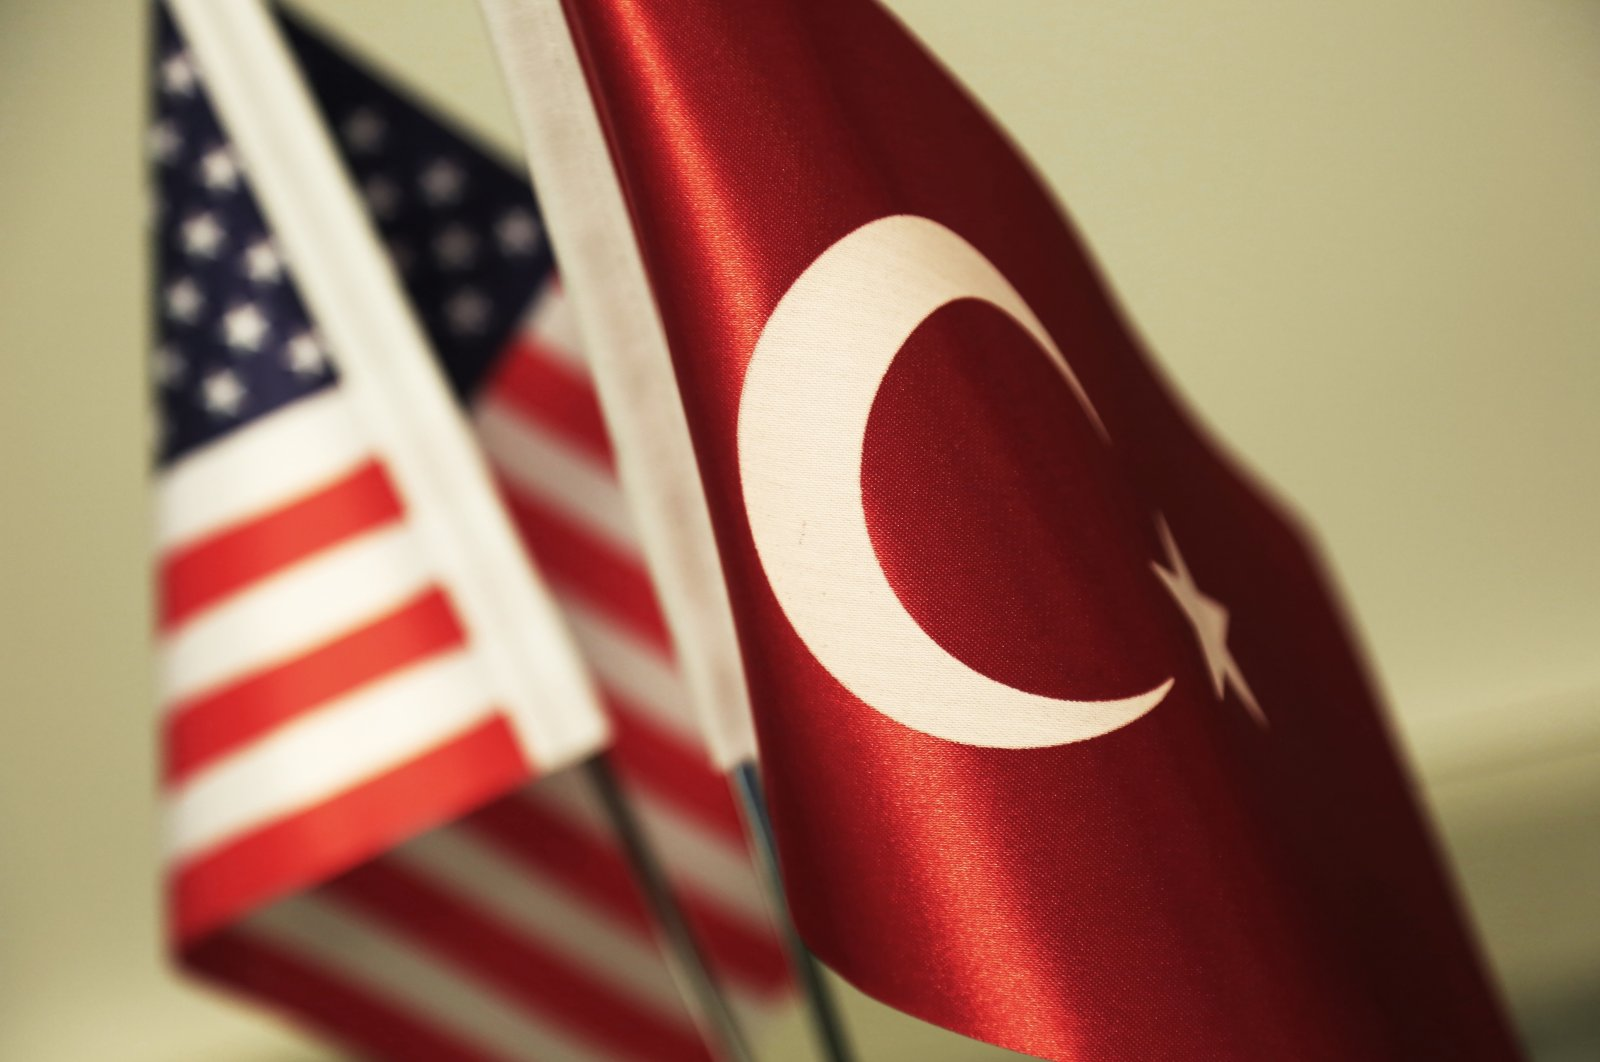 The flags of the United States and Turkey are pictured in an illustration, April 26, 2019. (iStock Photo)